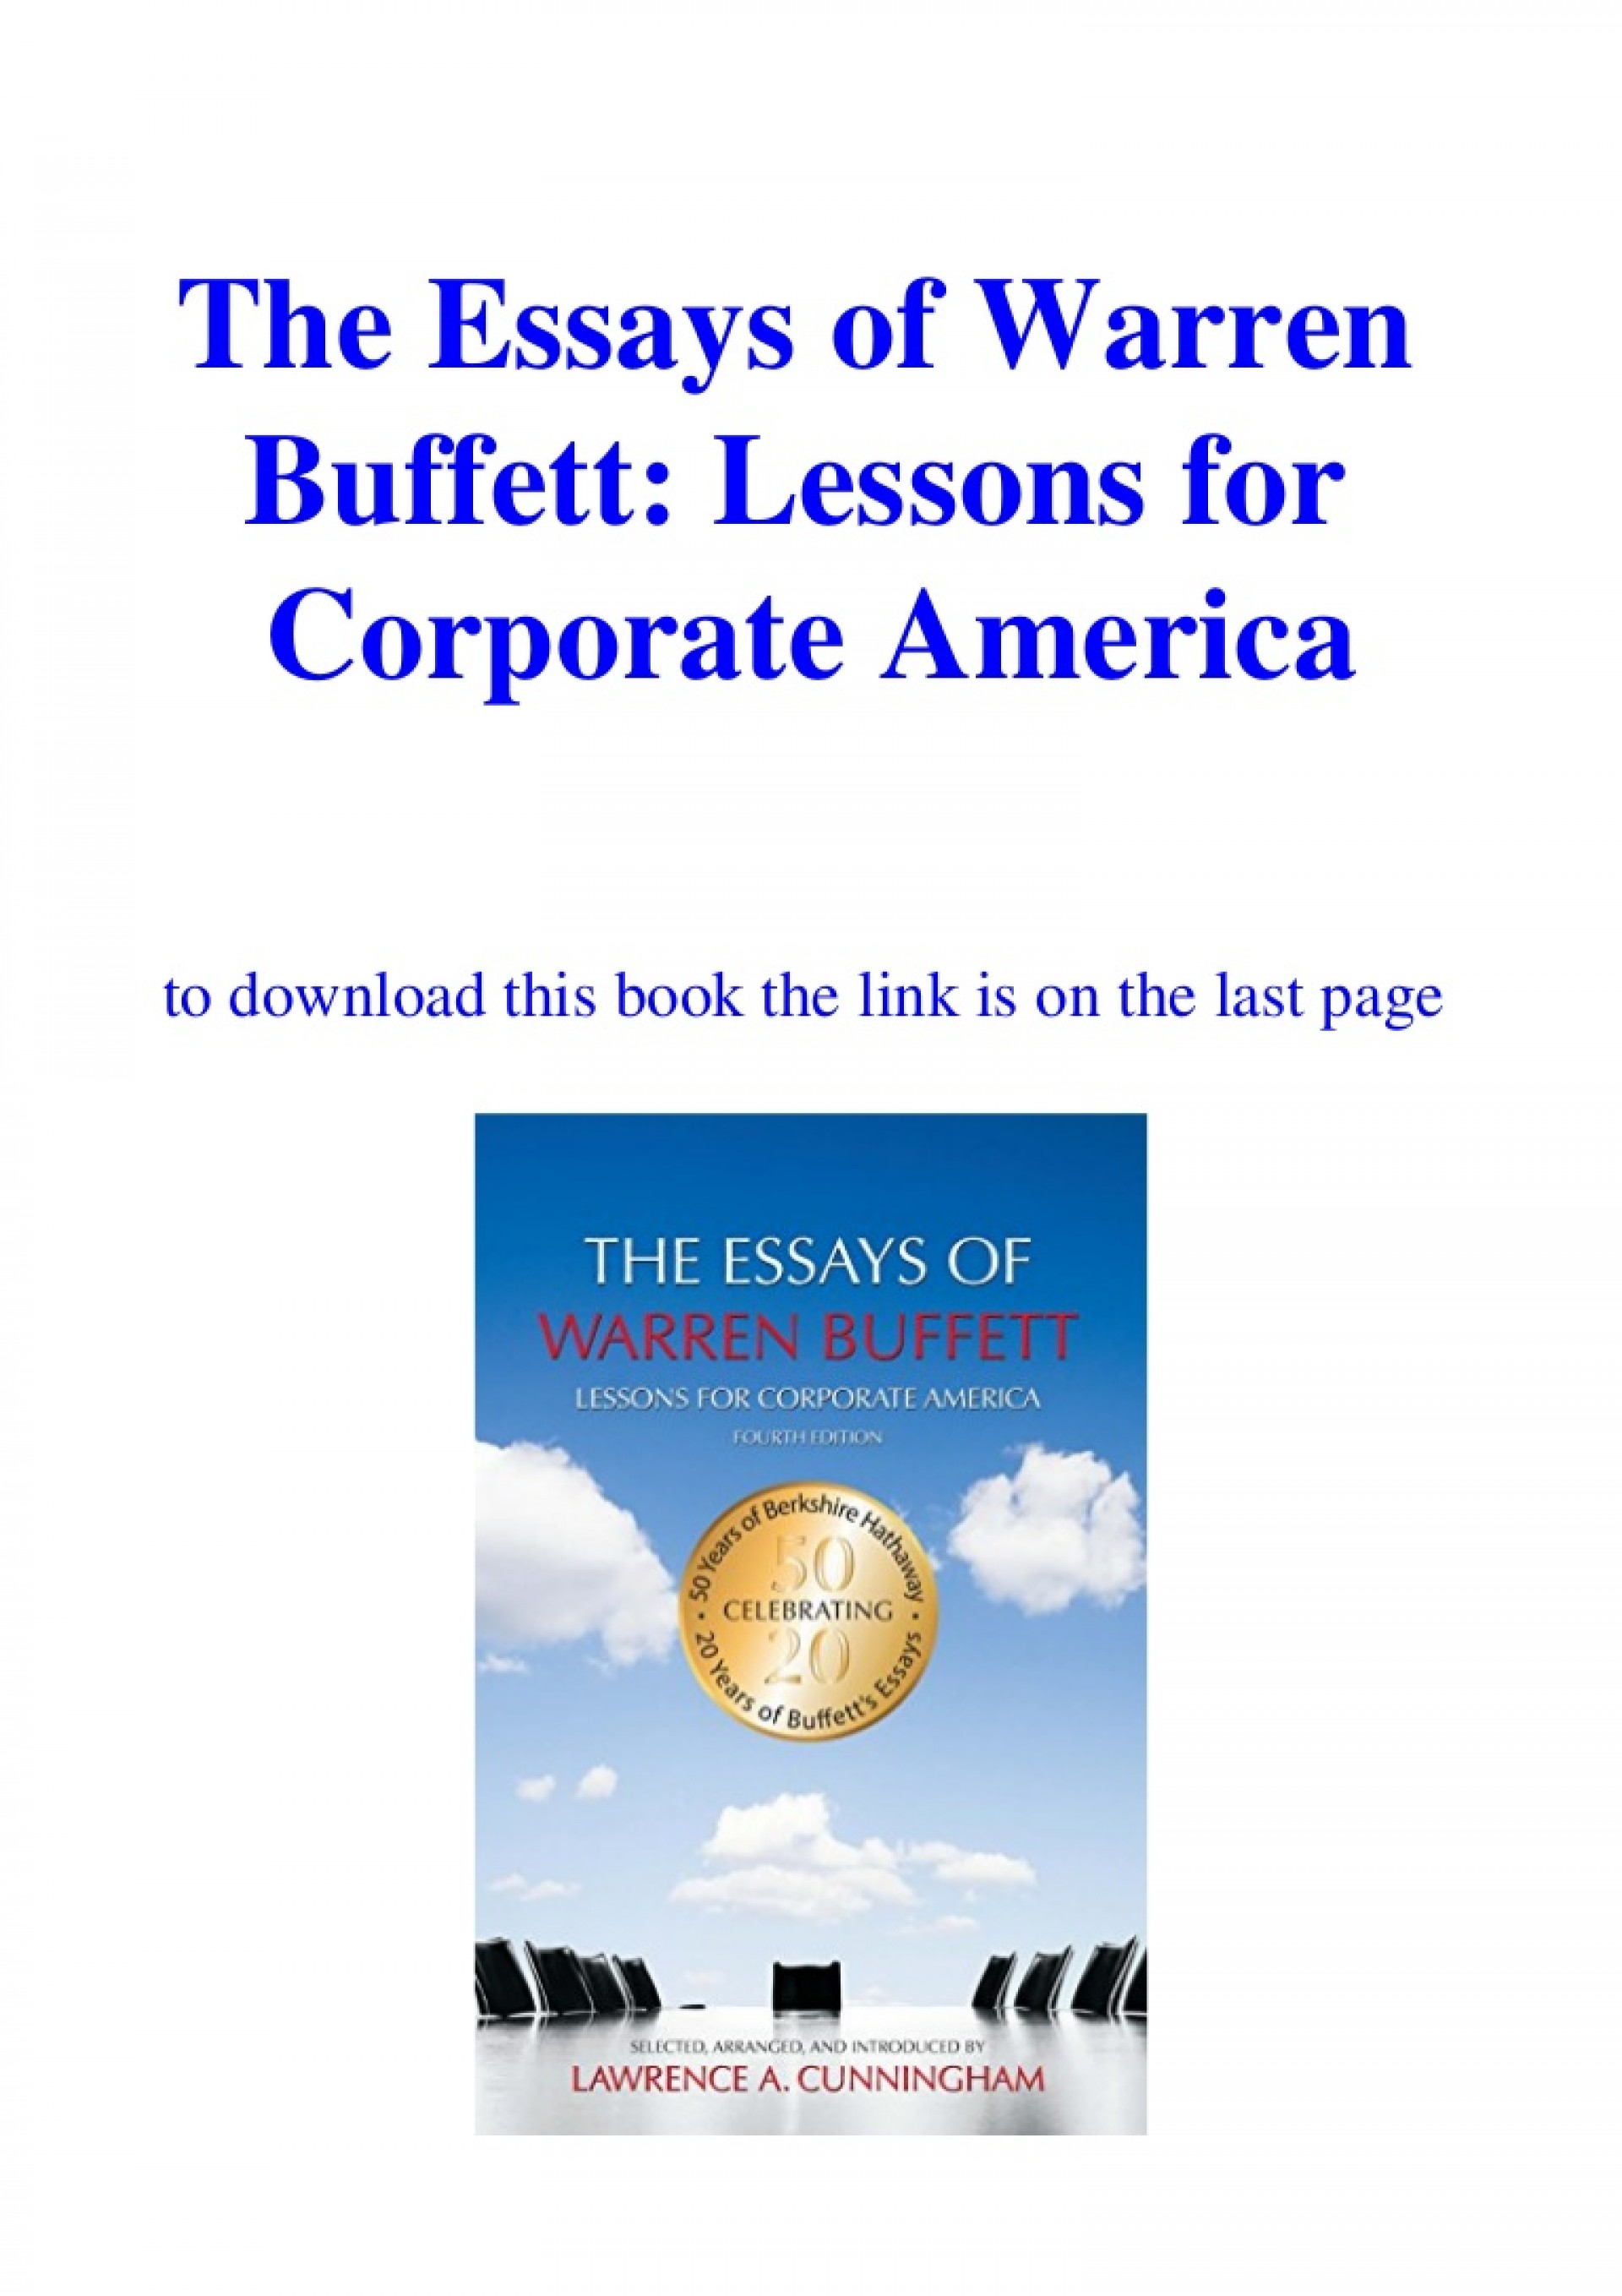 015 Essay Example Downloadtheessaysofwarrenbuffettlessonsforcorporateamericaebookpdf Thumbnail The Essays Of Warren Buffett Lessons For Corporate Remarkable America Third Edition 3rd Second Pdf Audio Book 1920